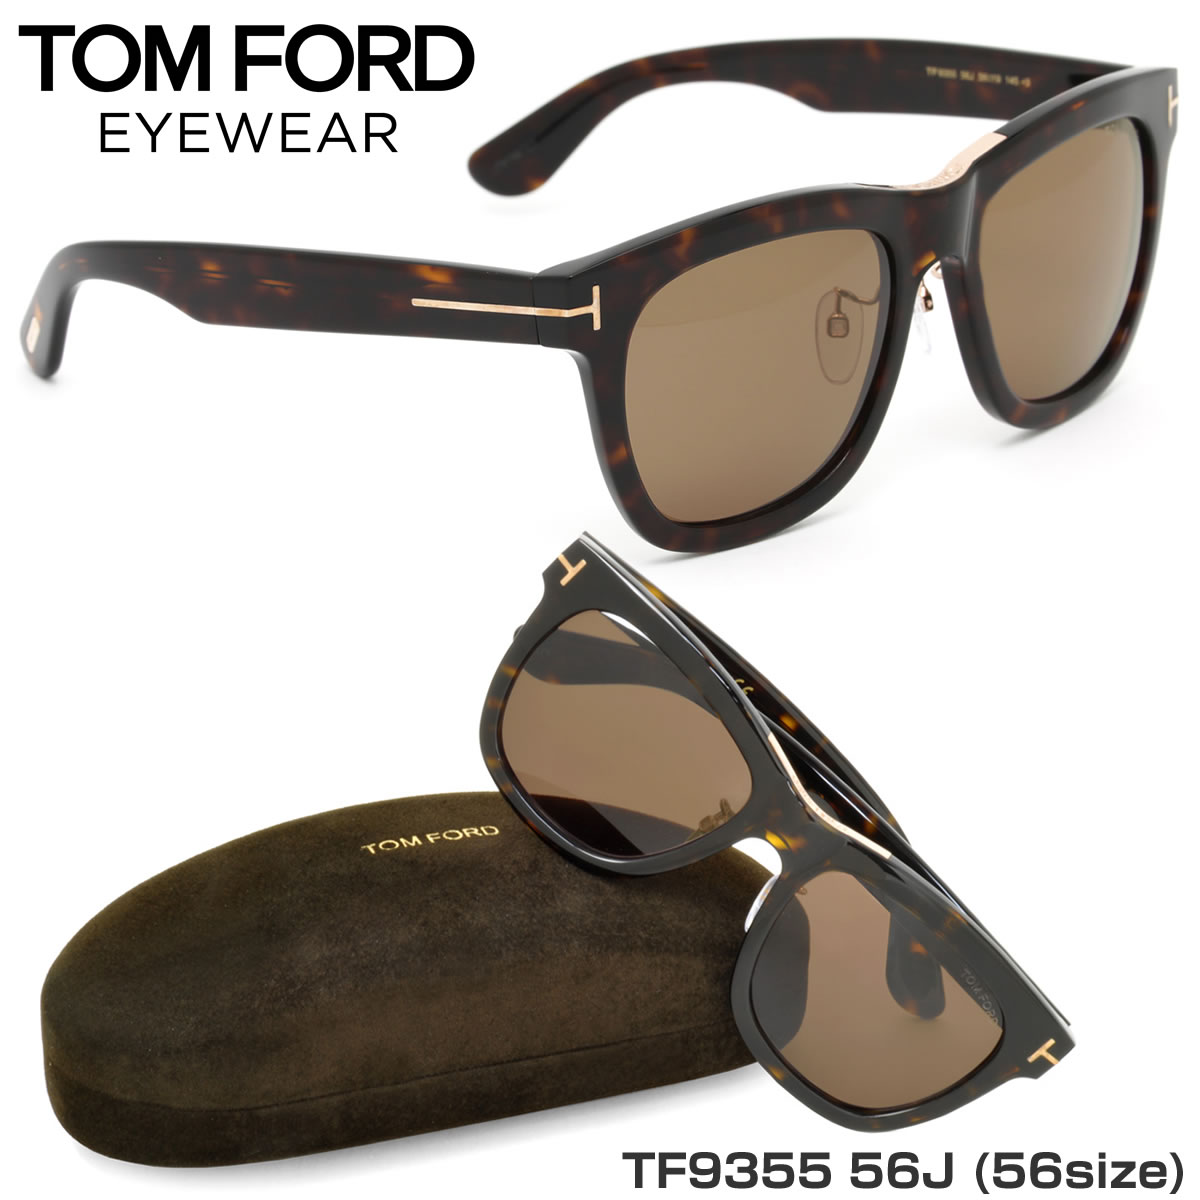 116af79e6e (TOM FORD) sunglasses TF9355 56 J 56 size Wellington TOMFORD Ford FT9355 s  men s women s